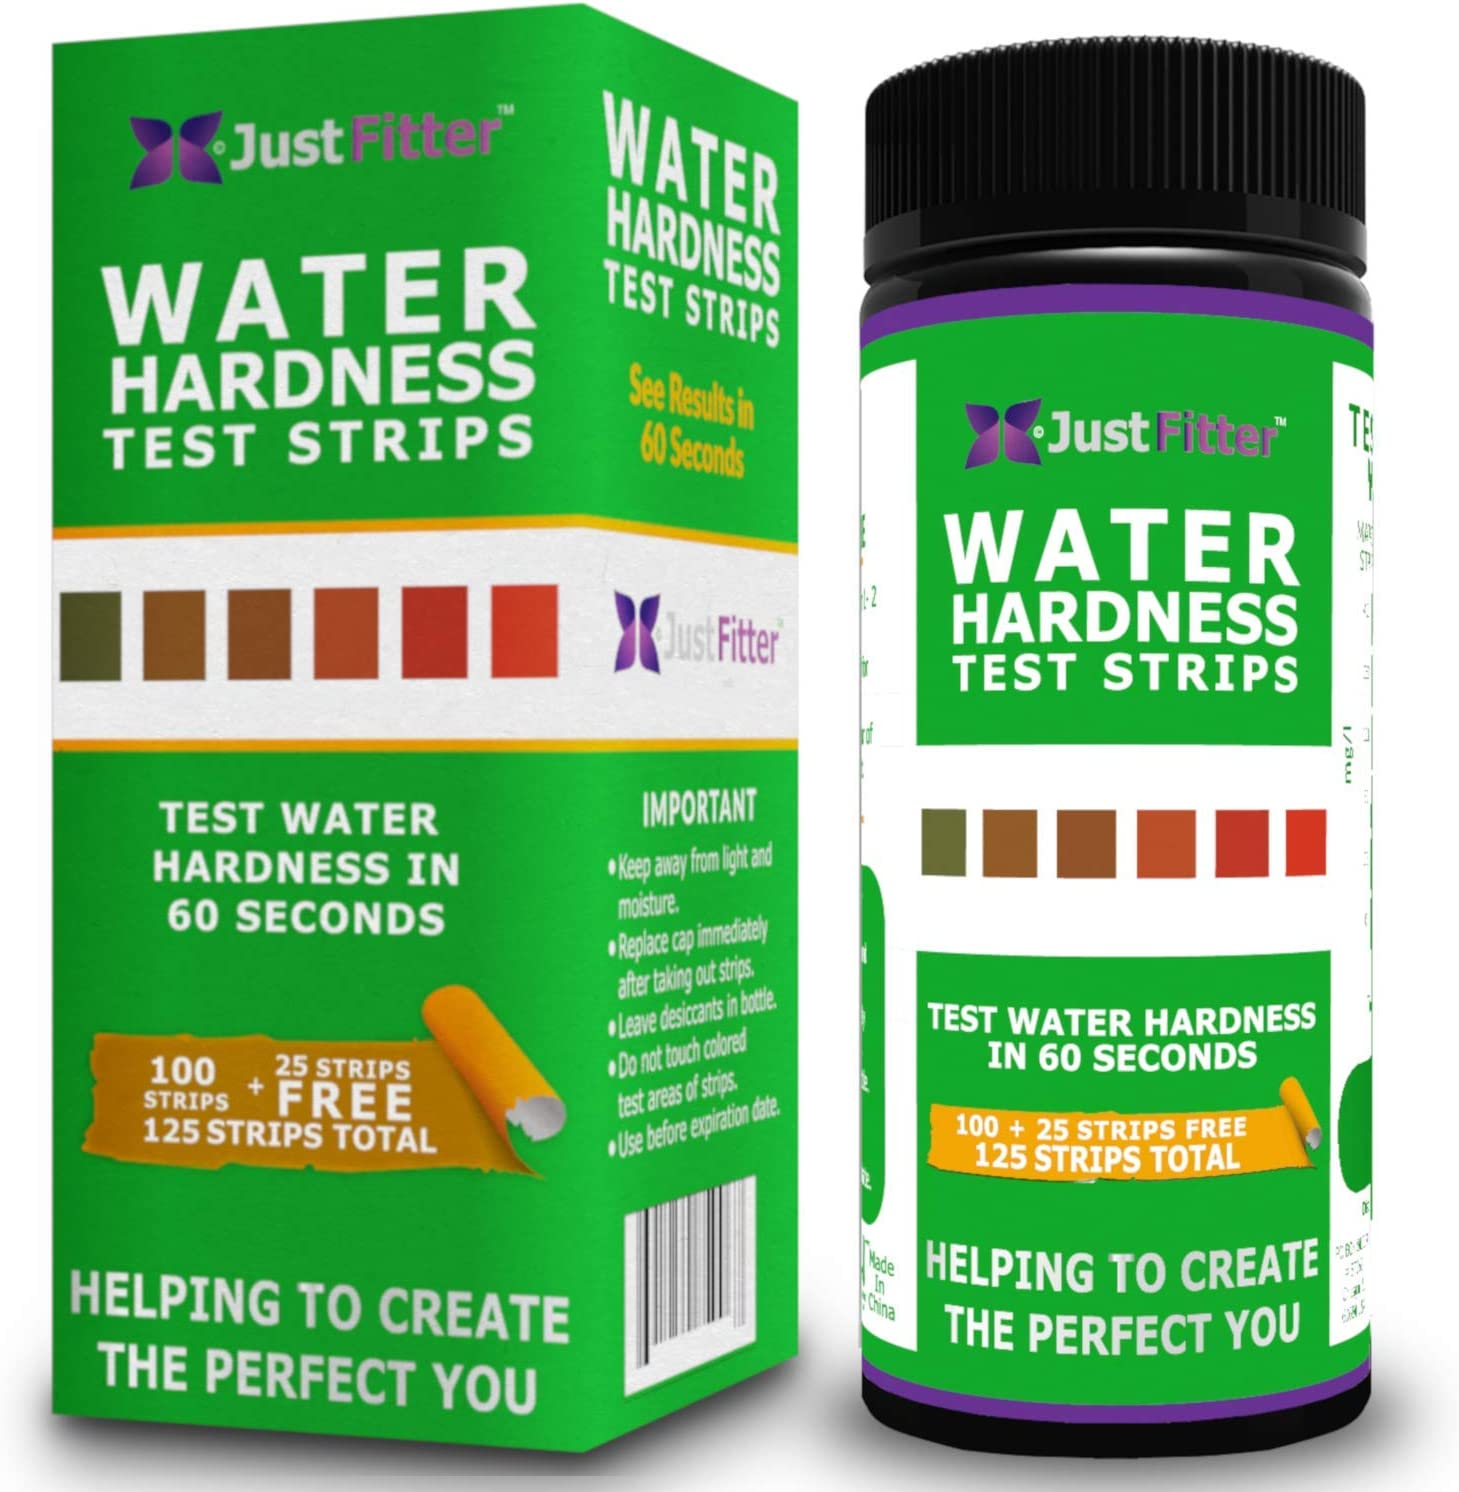 Total Water Hardness Test Strips. Each Strip Best and Reliable for Home Testing Pool, Spa, Aquarium, Drinking Water, Well. Easy to Compare Color Chart. Dip for Quality Accurate Results in Seconds.